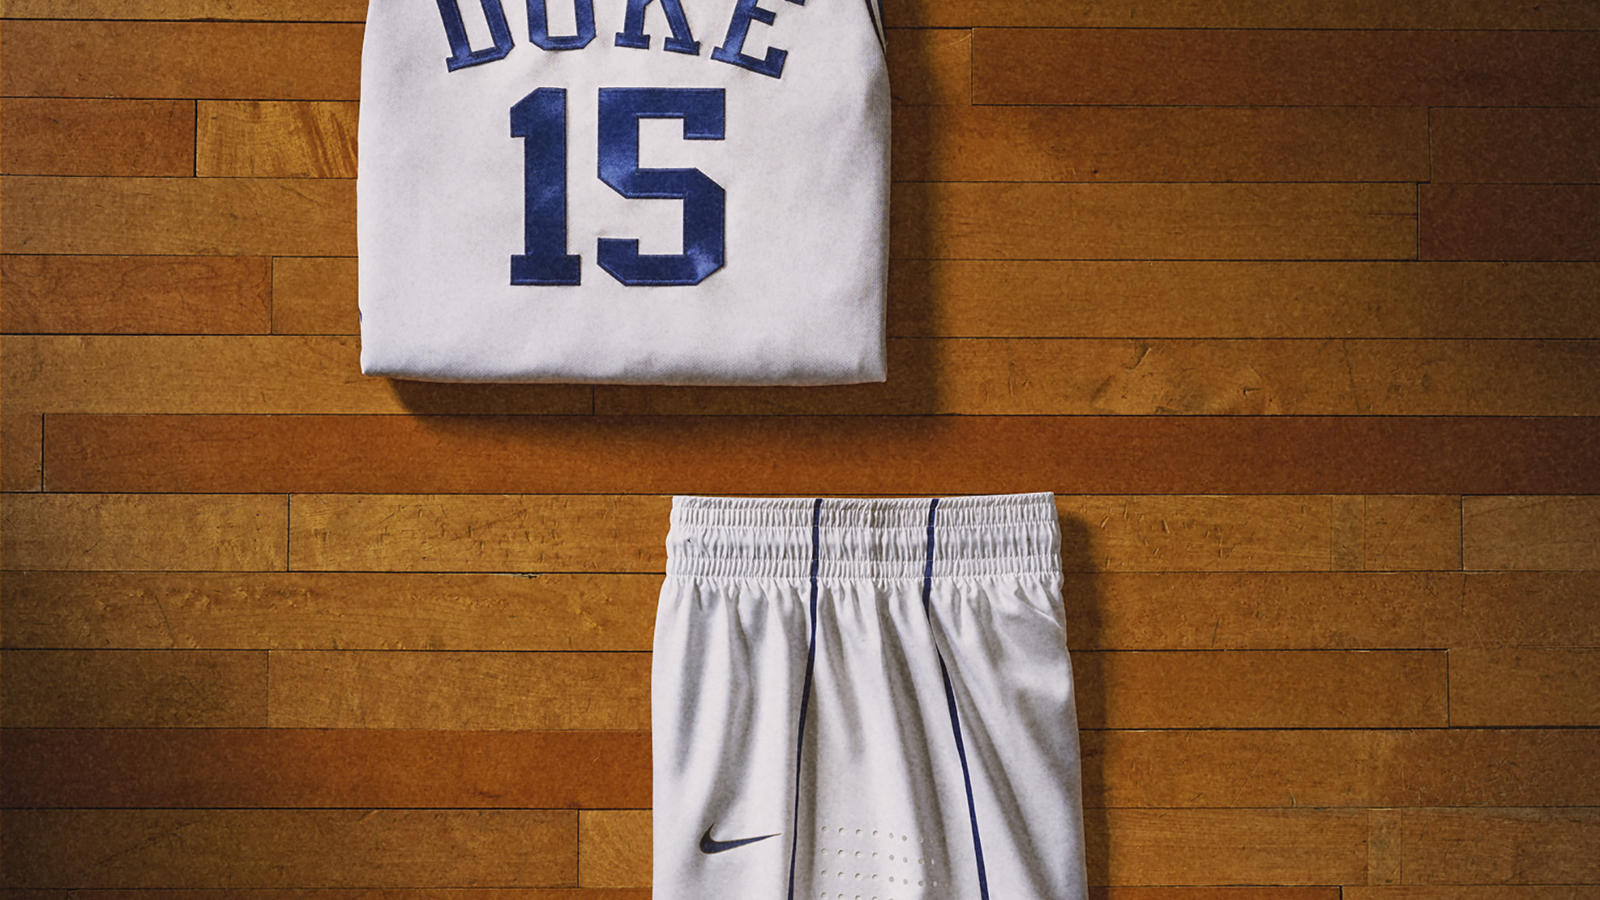 Duke main uniform